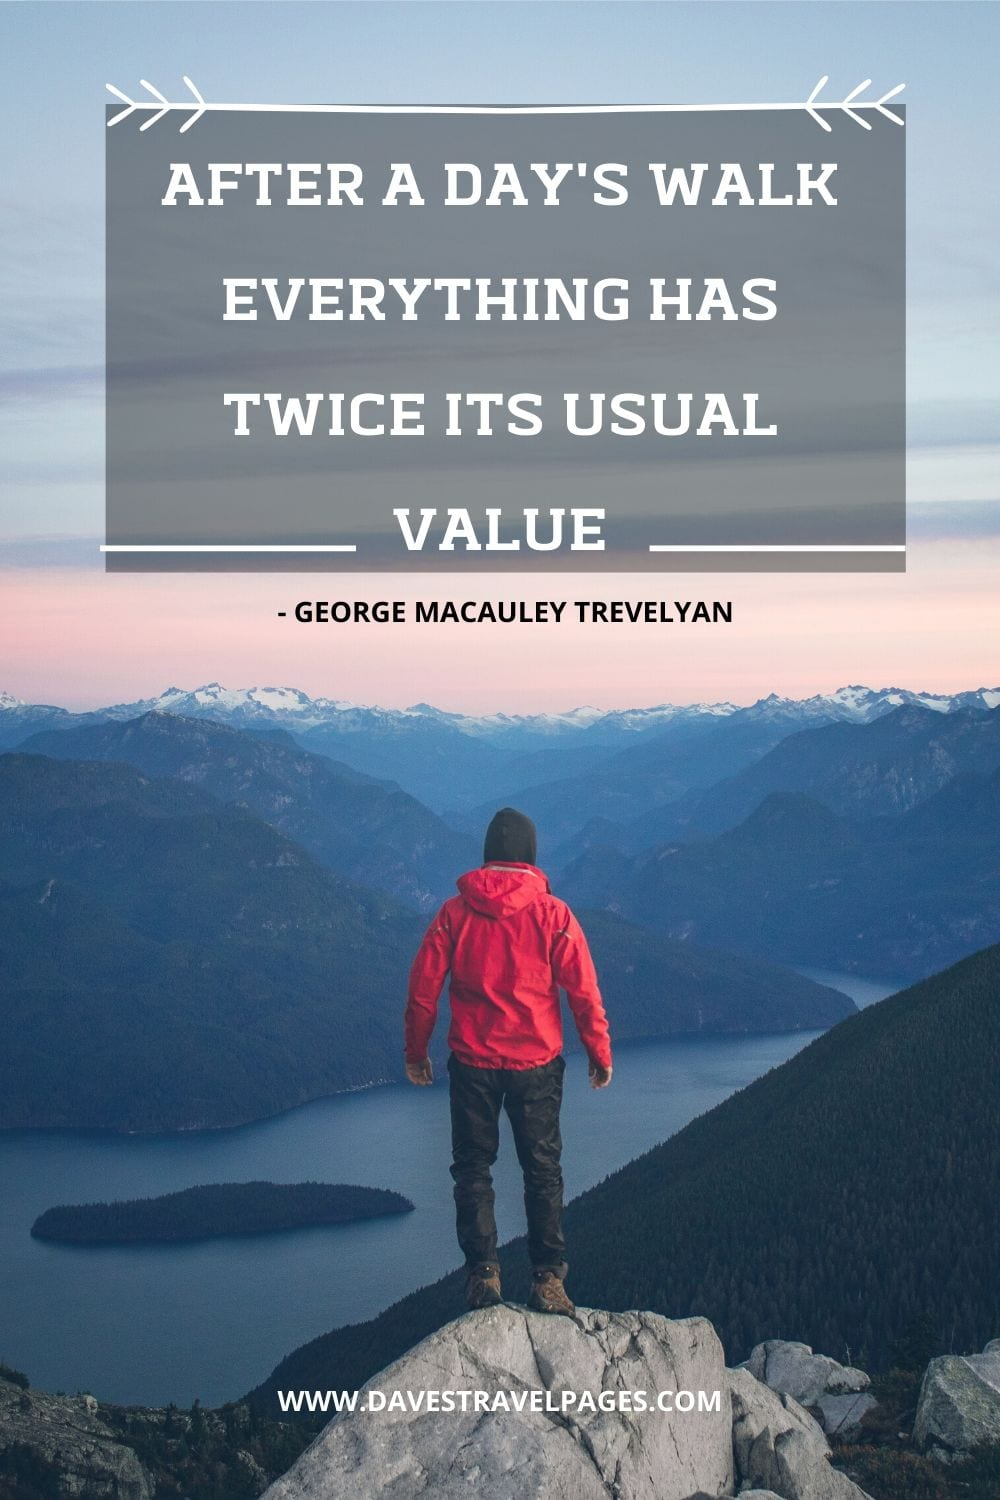 Walking quotes: After a day's walk everything has twice its usual value. - George Macauley Trevelyan